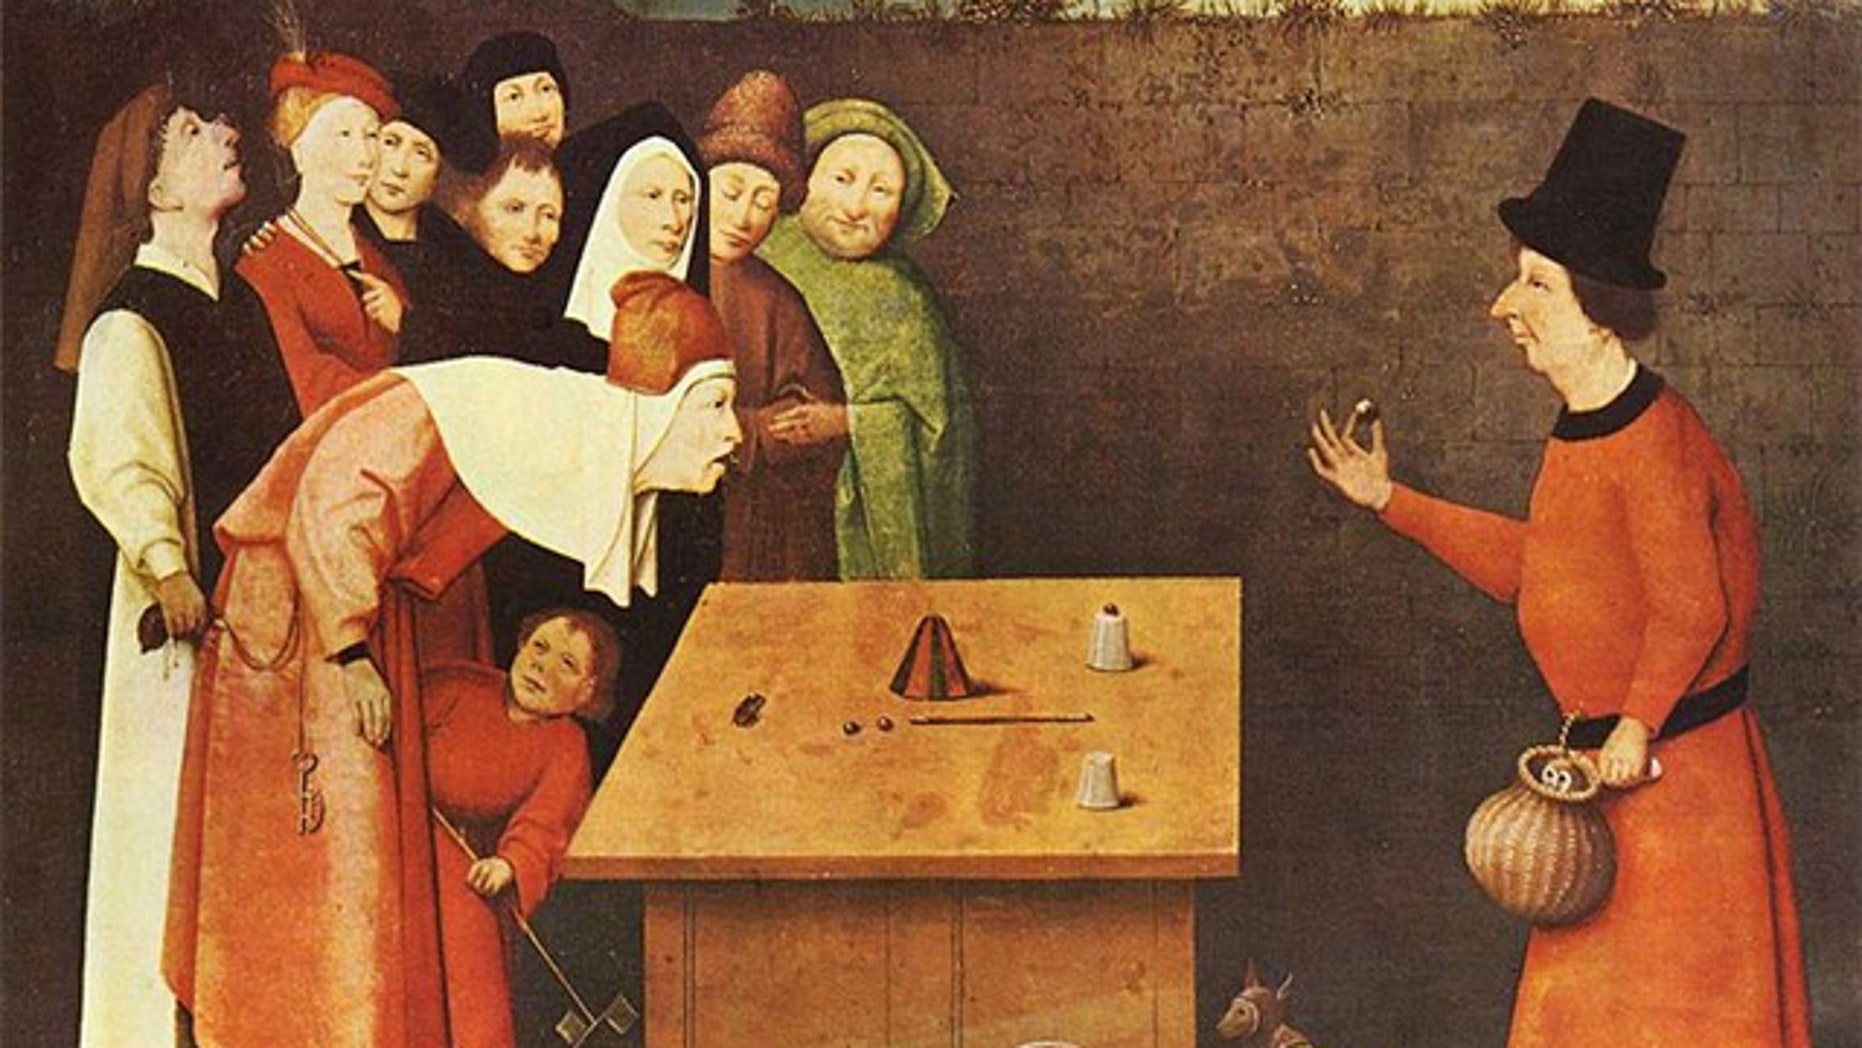 The Conjurer, 1475-1480, by Hieronymus Bosch.